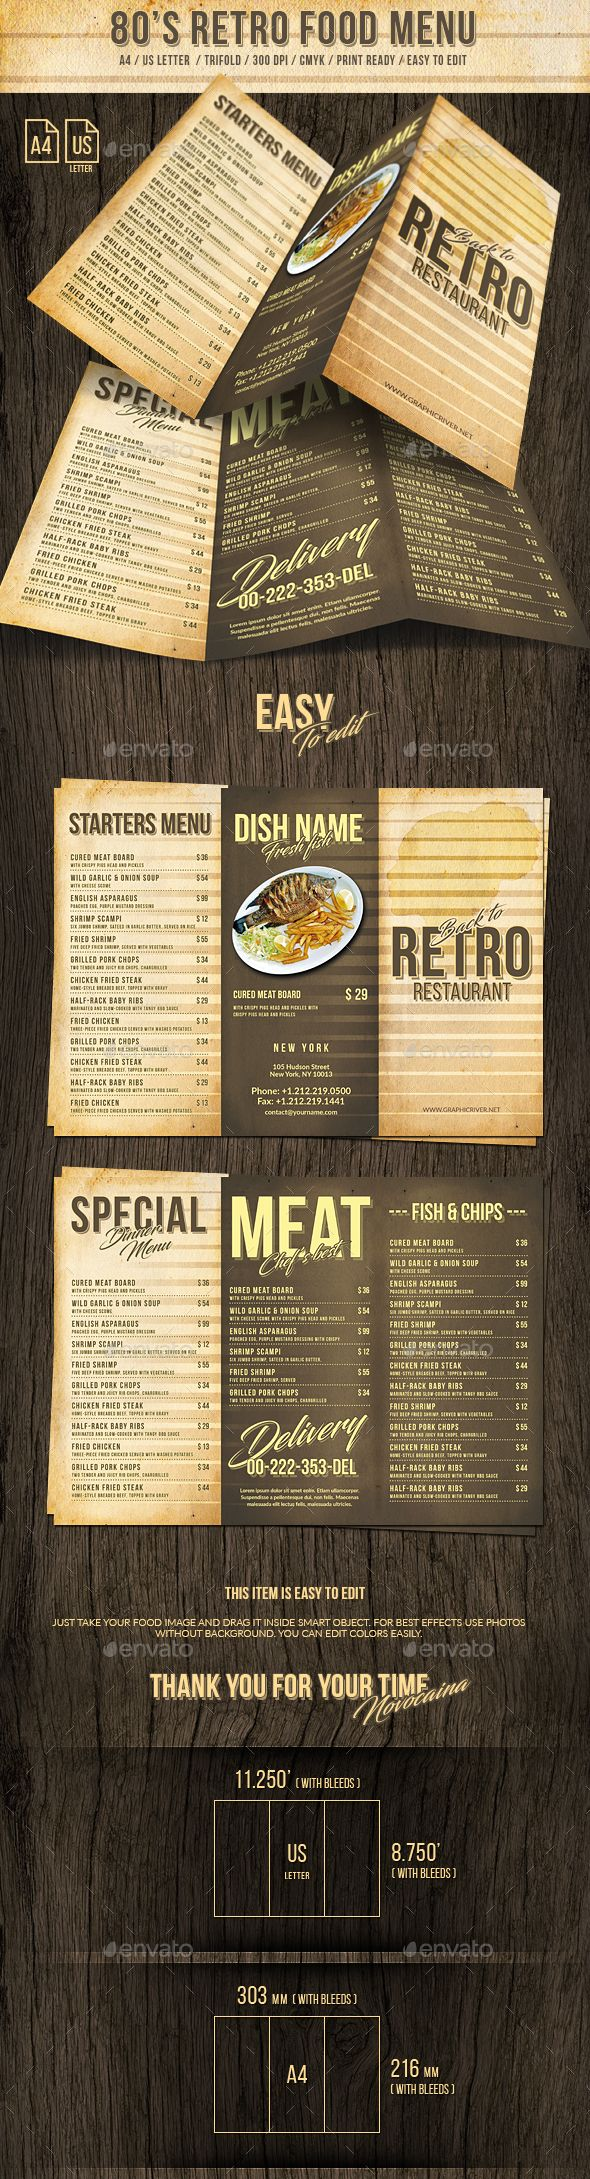 455 best trifold restaurant menu template images on pinterest 80s retro trifold menu us letter and a4 pronofoot35fo Choice Image